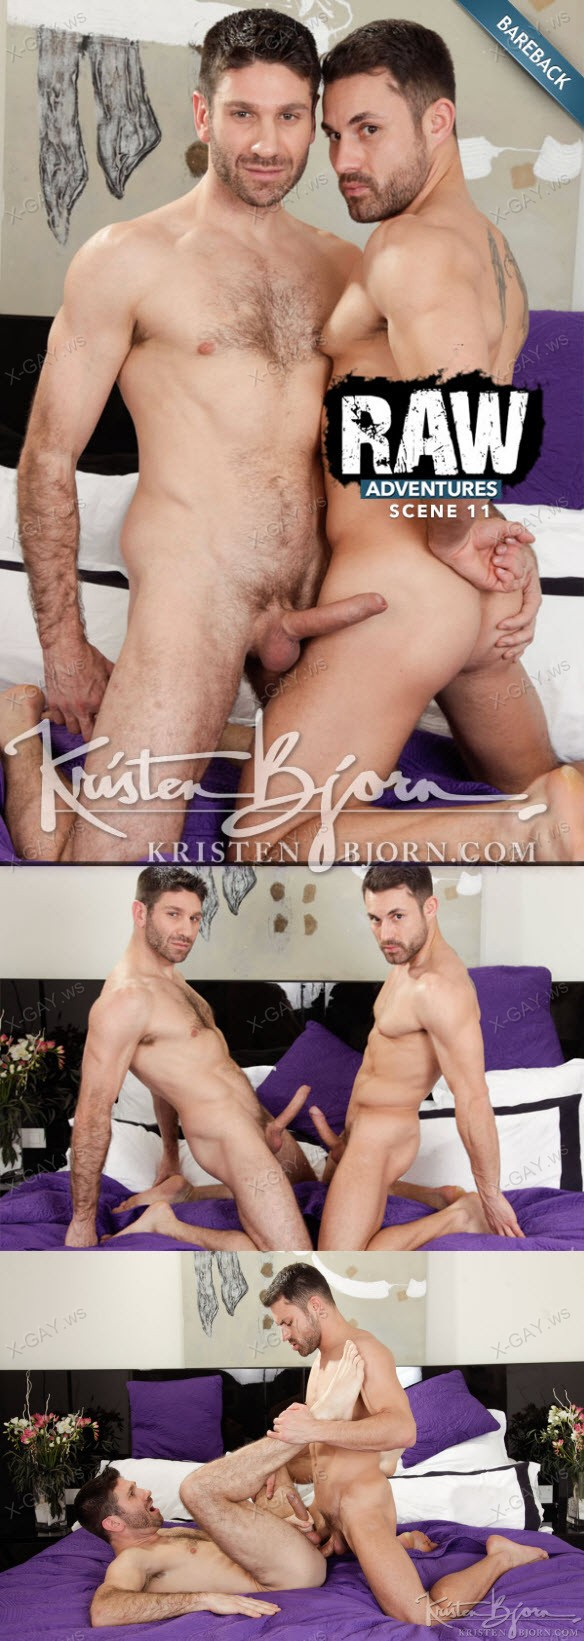 KristenBjorn: Raw Adventures (Scene 11), Chemistry (James Castle & Craig Daniel)